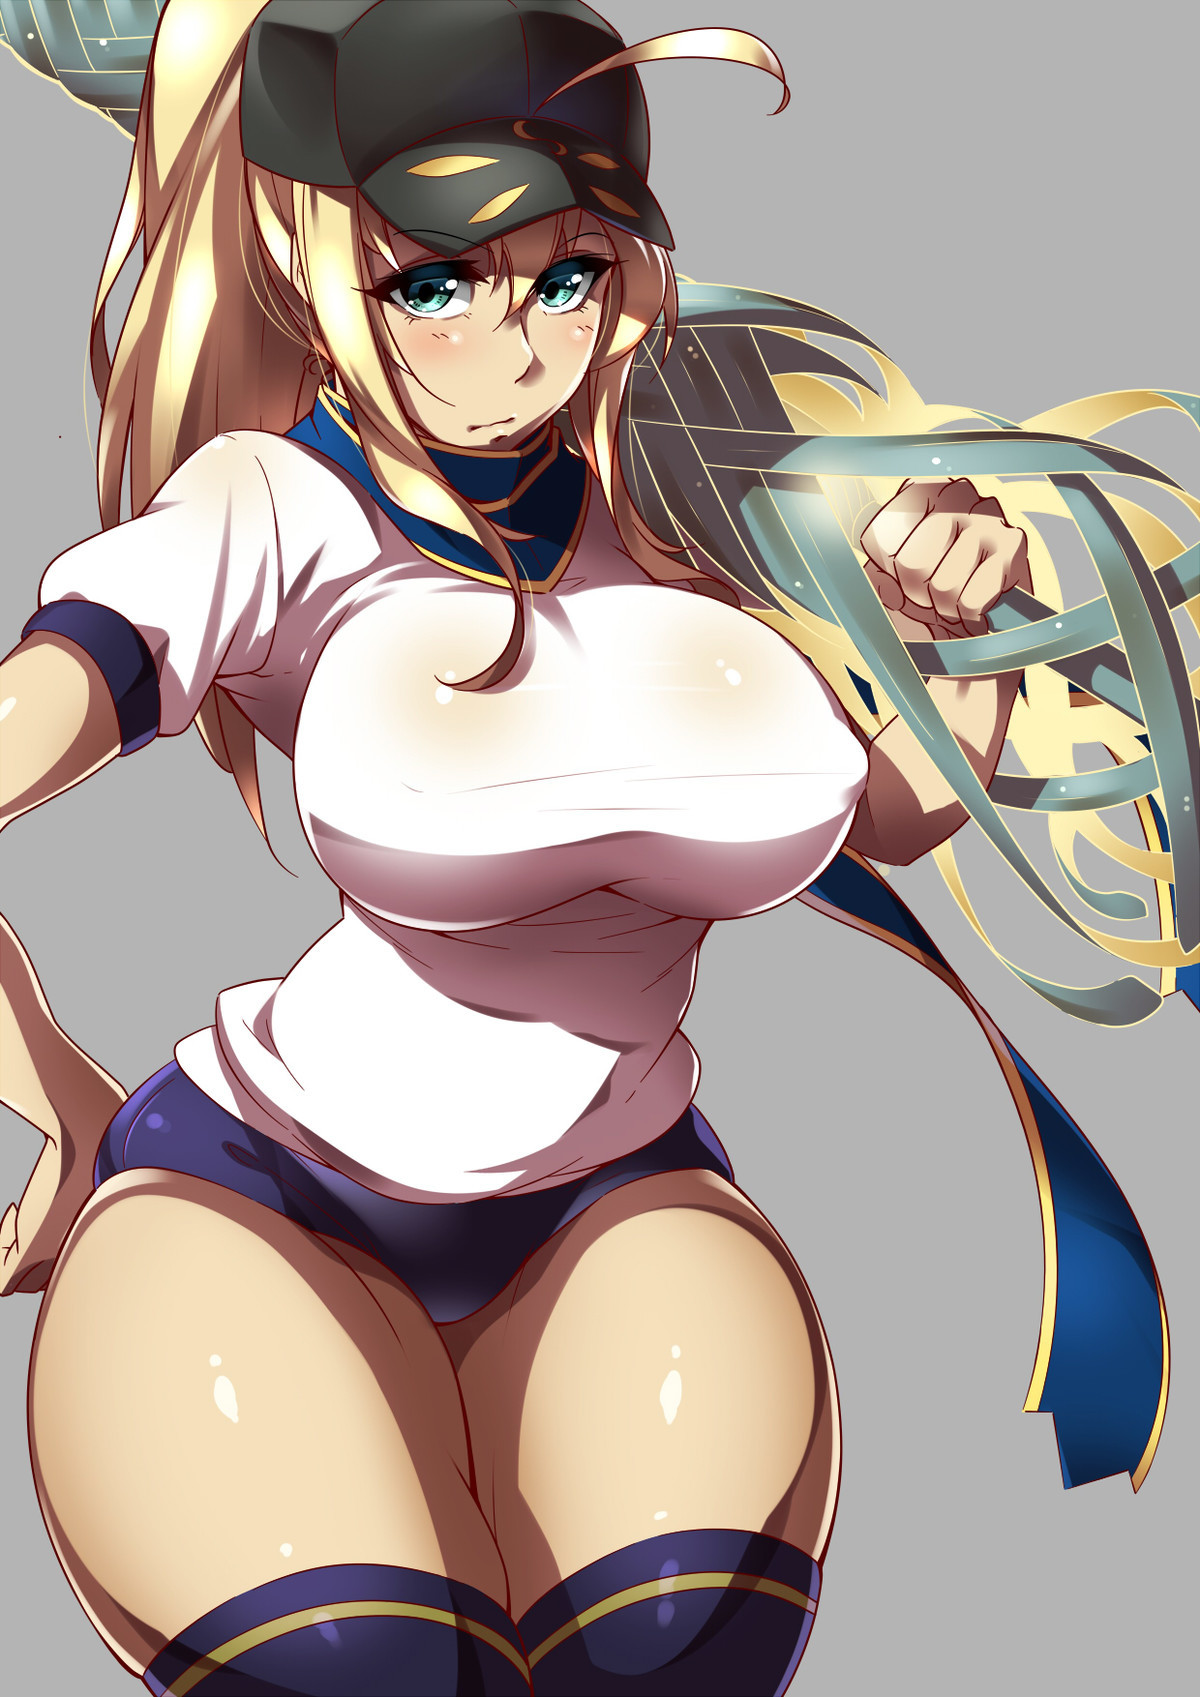 Mysterious Heroine X Lancer. Source illust.php?mode=medium&illustid=68170615 join list: Fate (421 subs)Mention History join list: